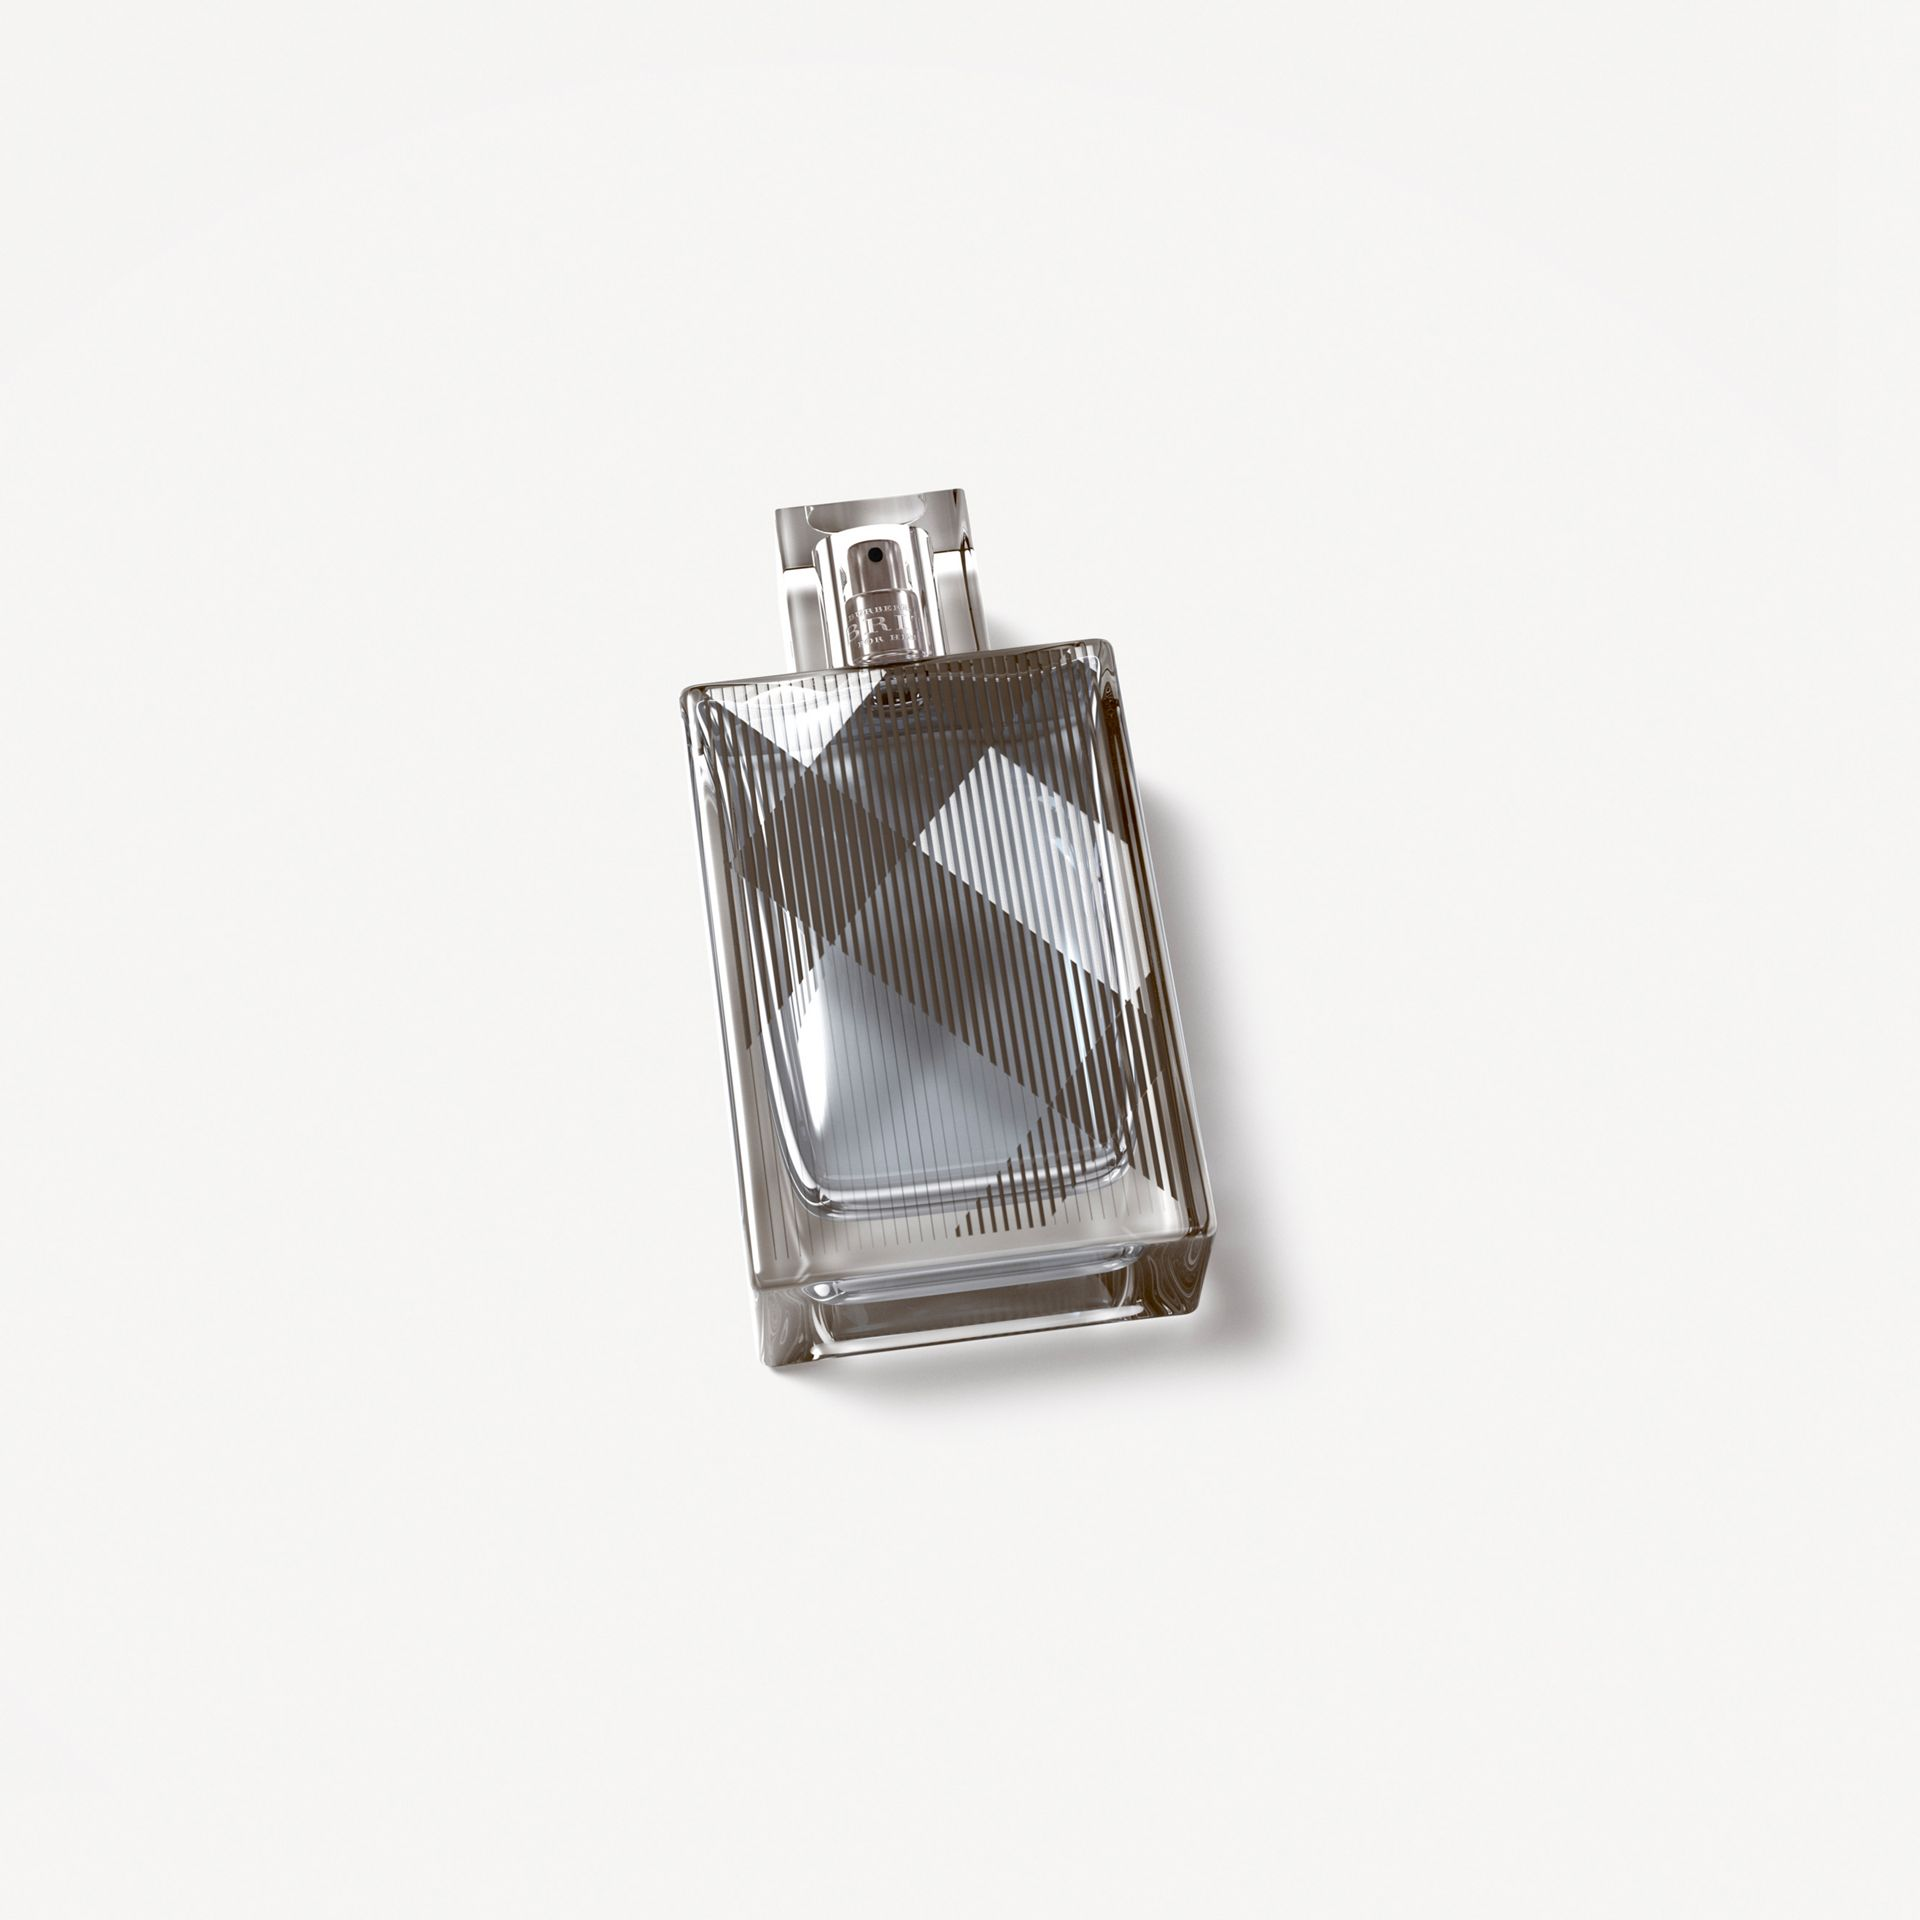 Burberry Brit For Him Eau de Toilette 50 ml - immagine della galleria 1